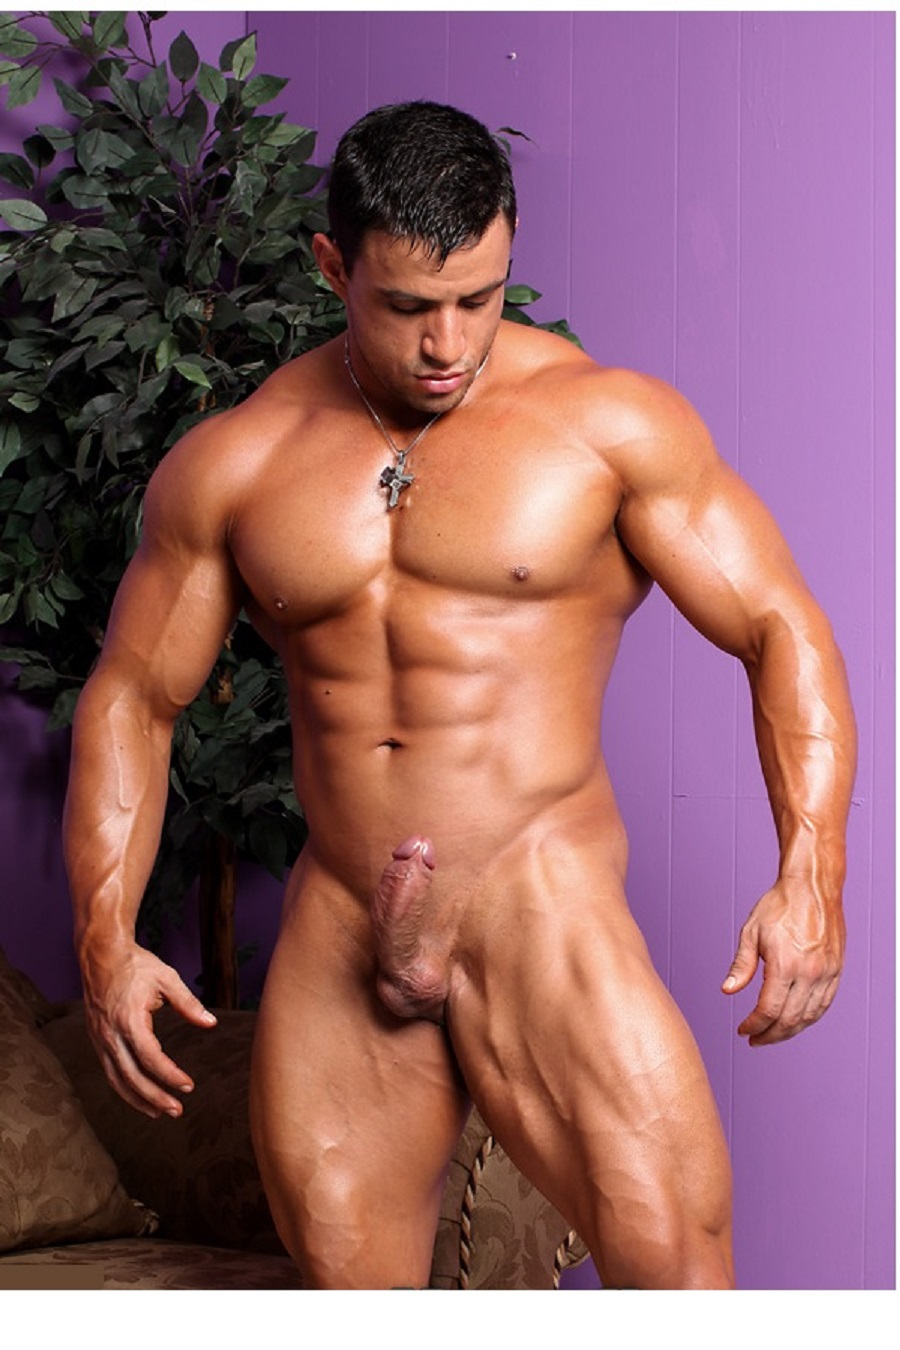 Authoritative muscle hunks with erections